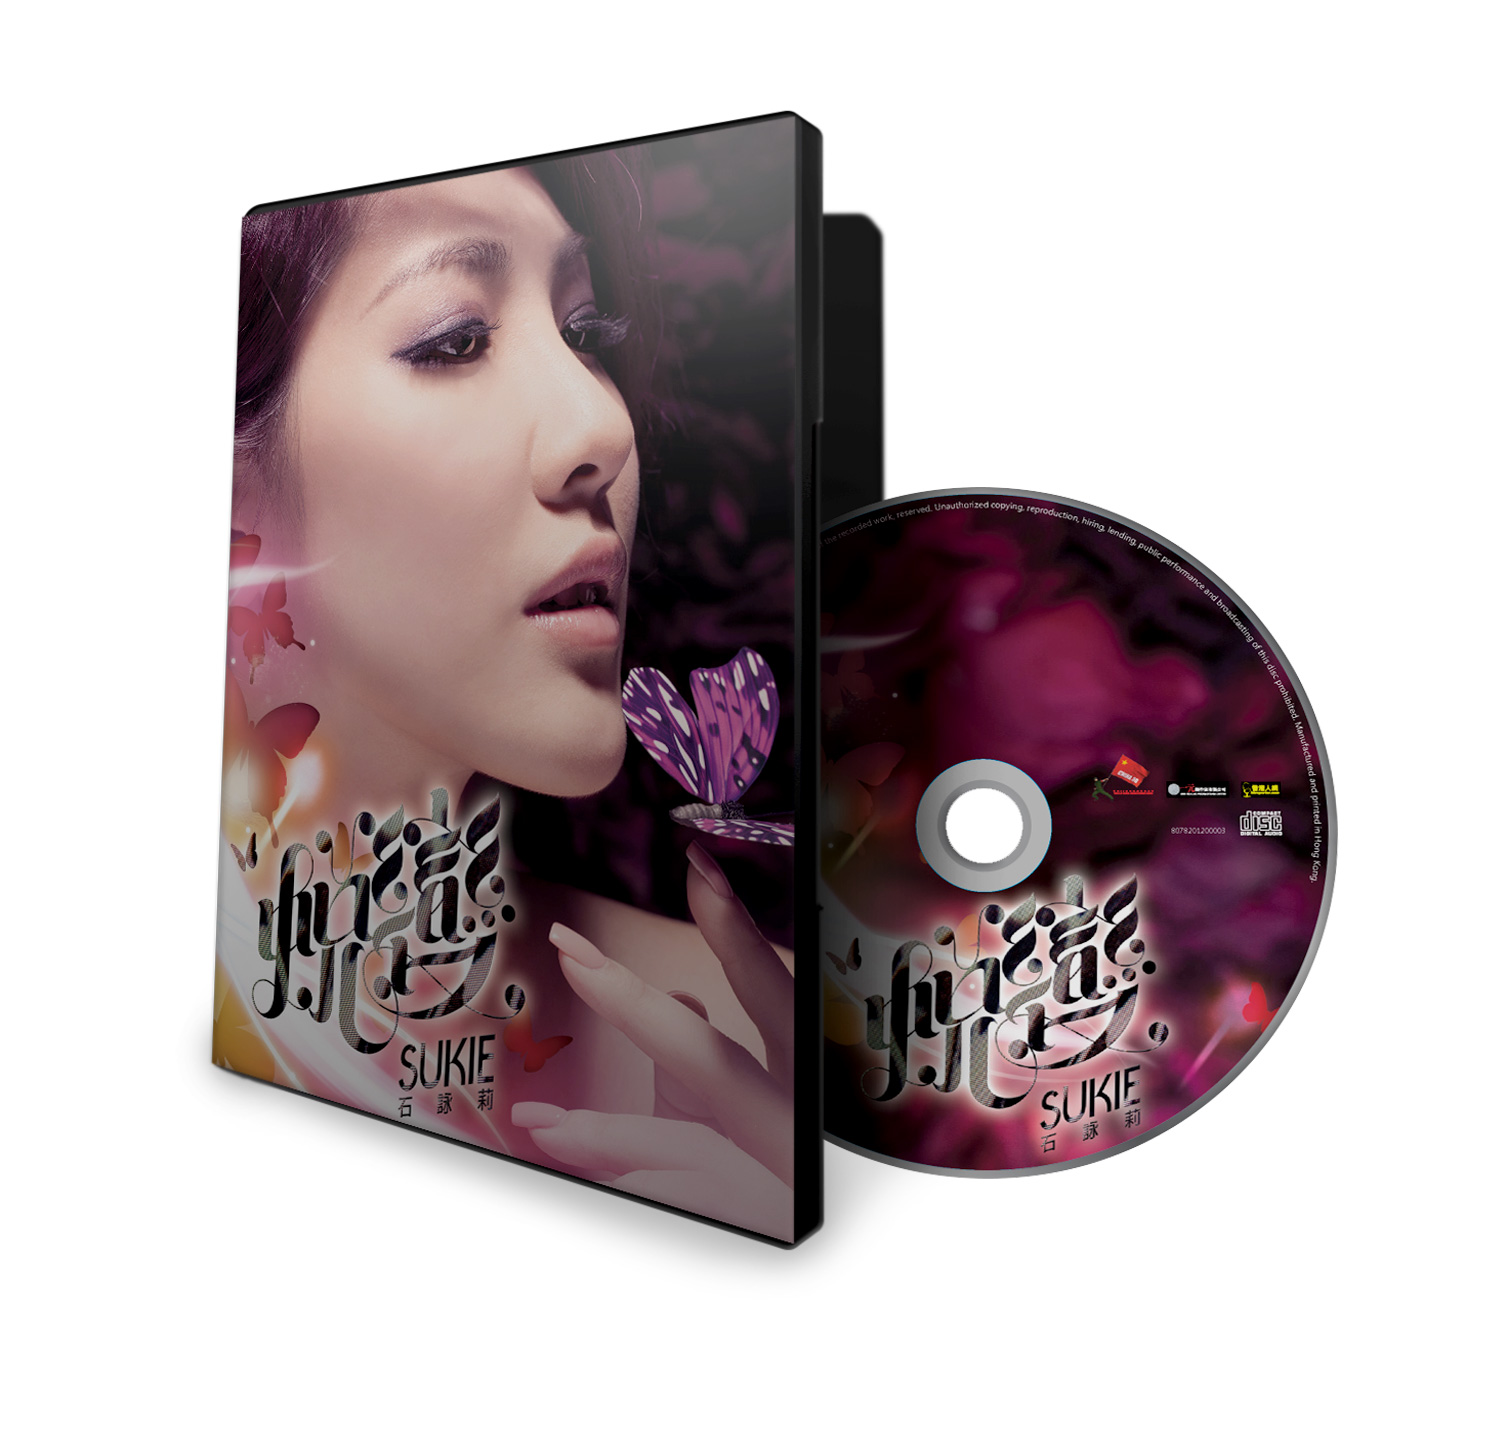 sukie-dvd-preview